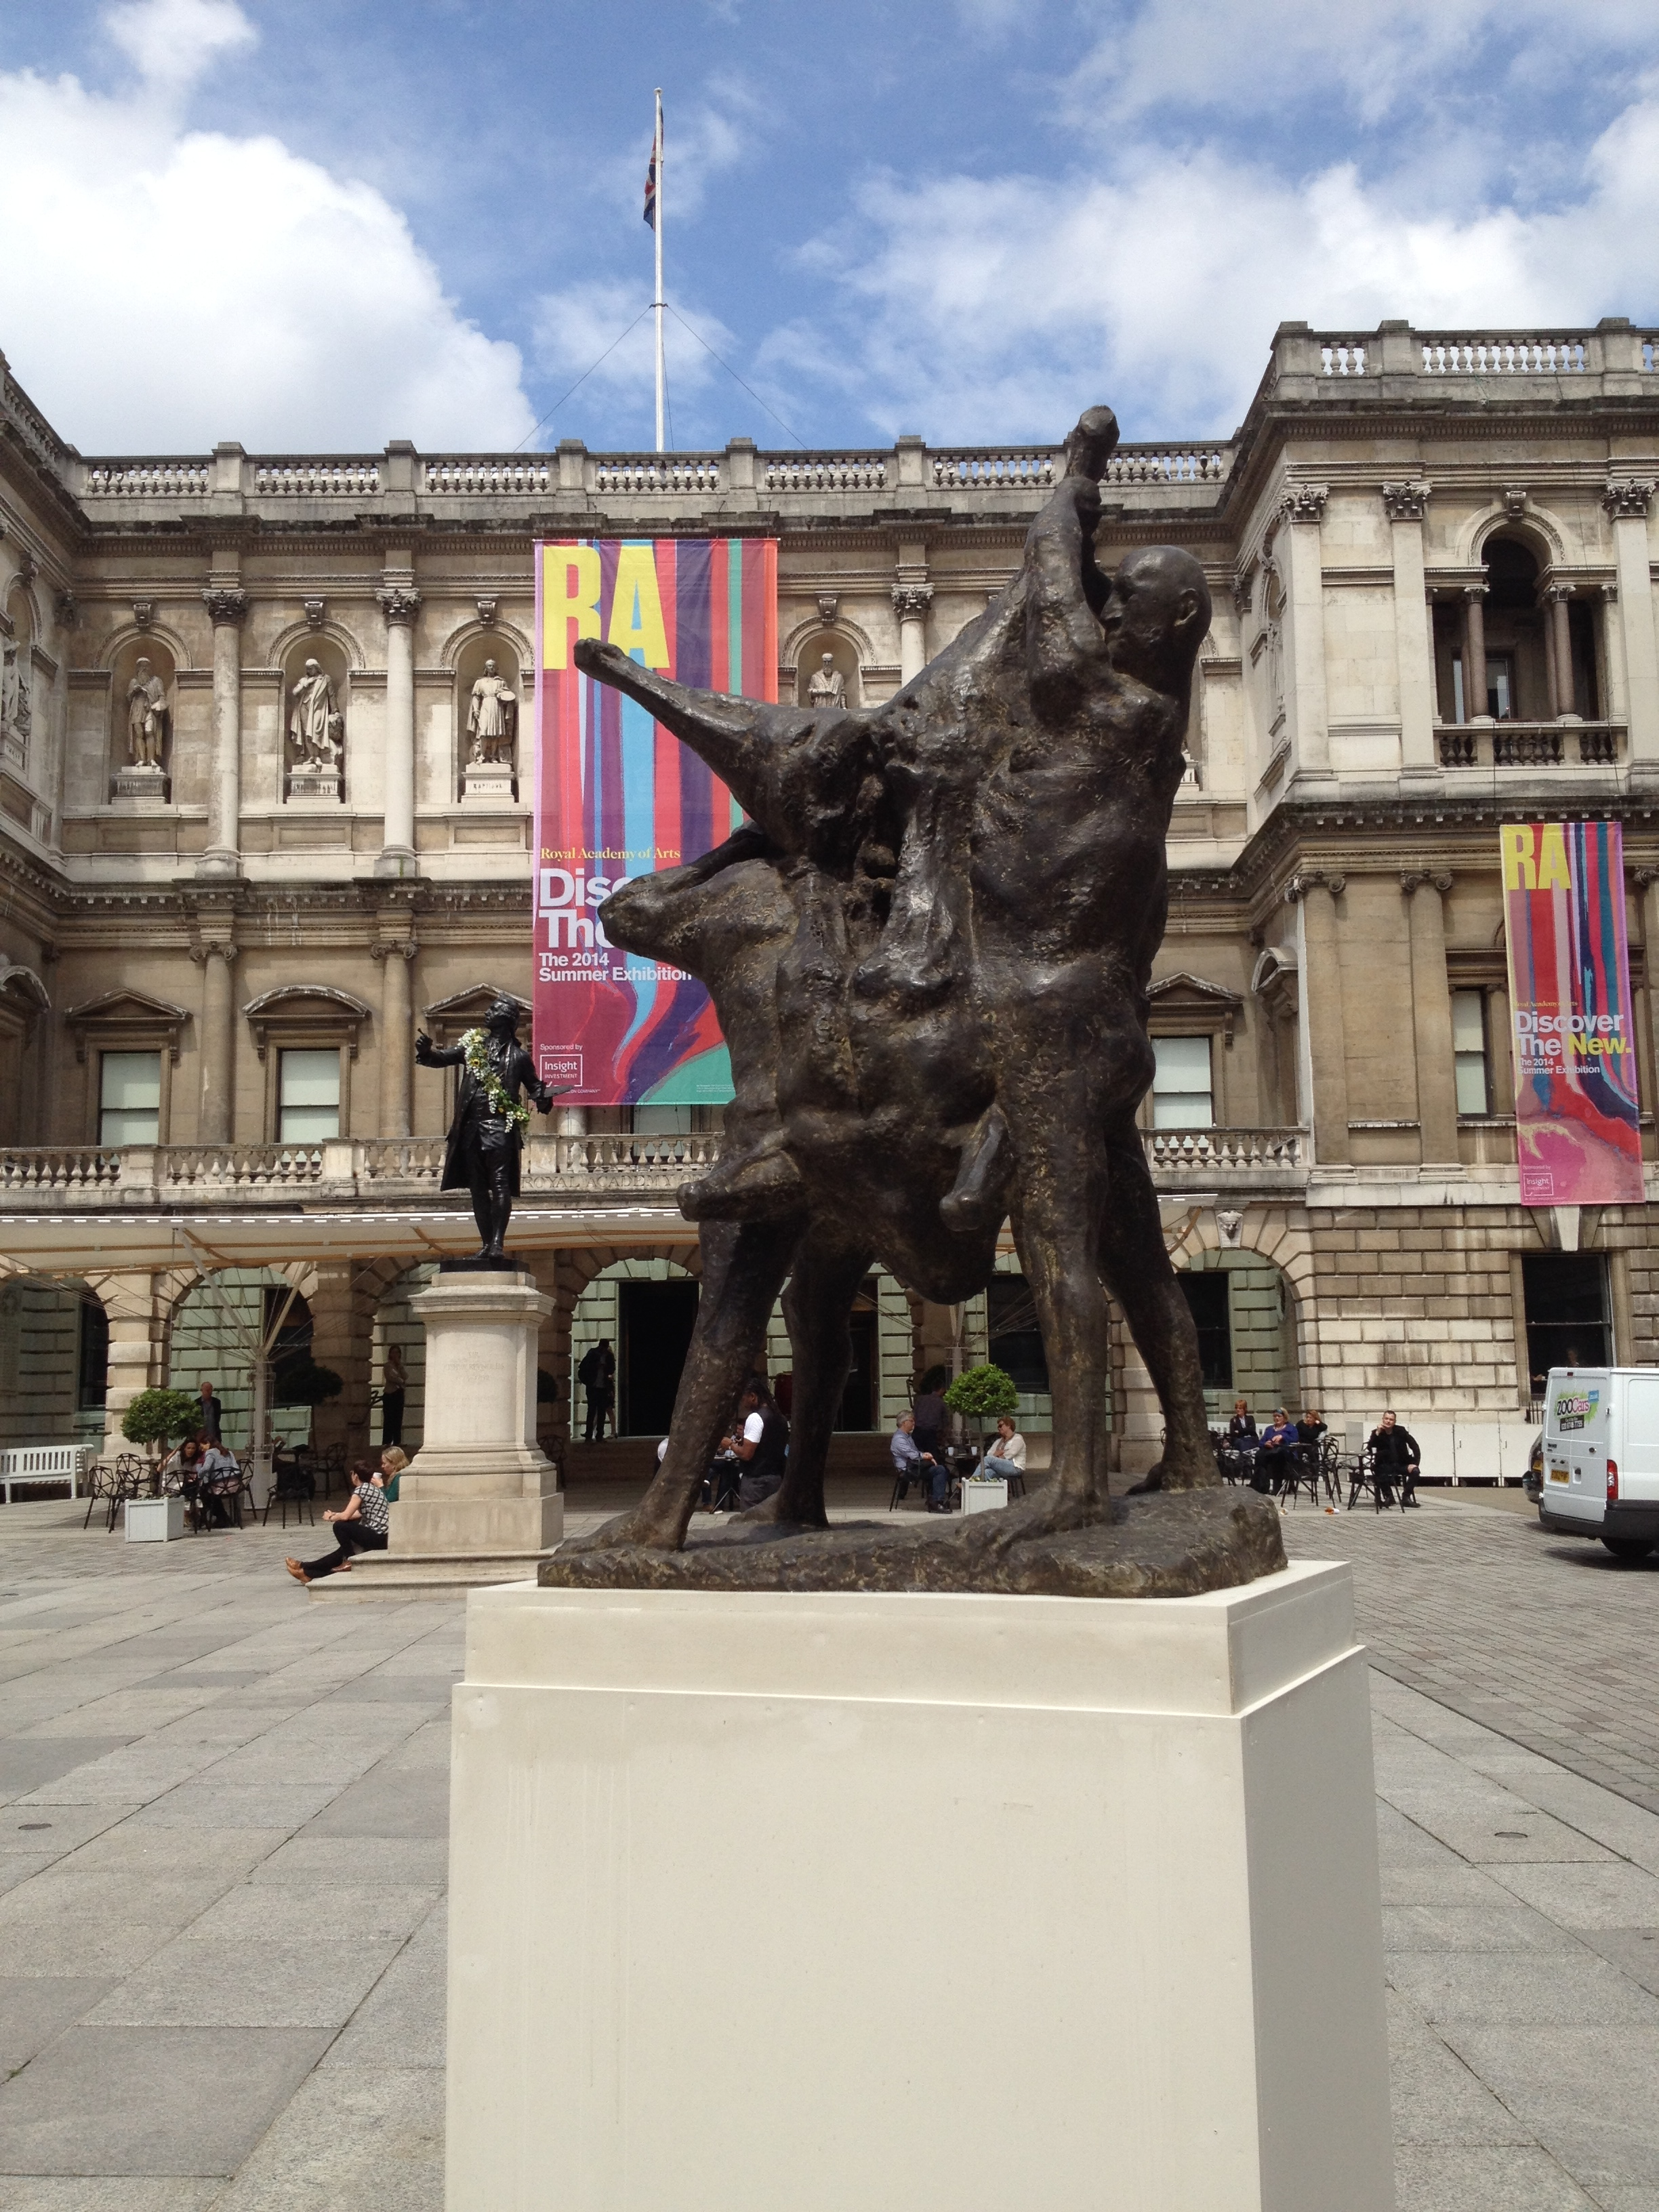 Chris Ingram talks about his major loan to the Royal Academy